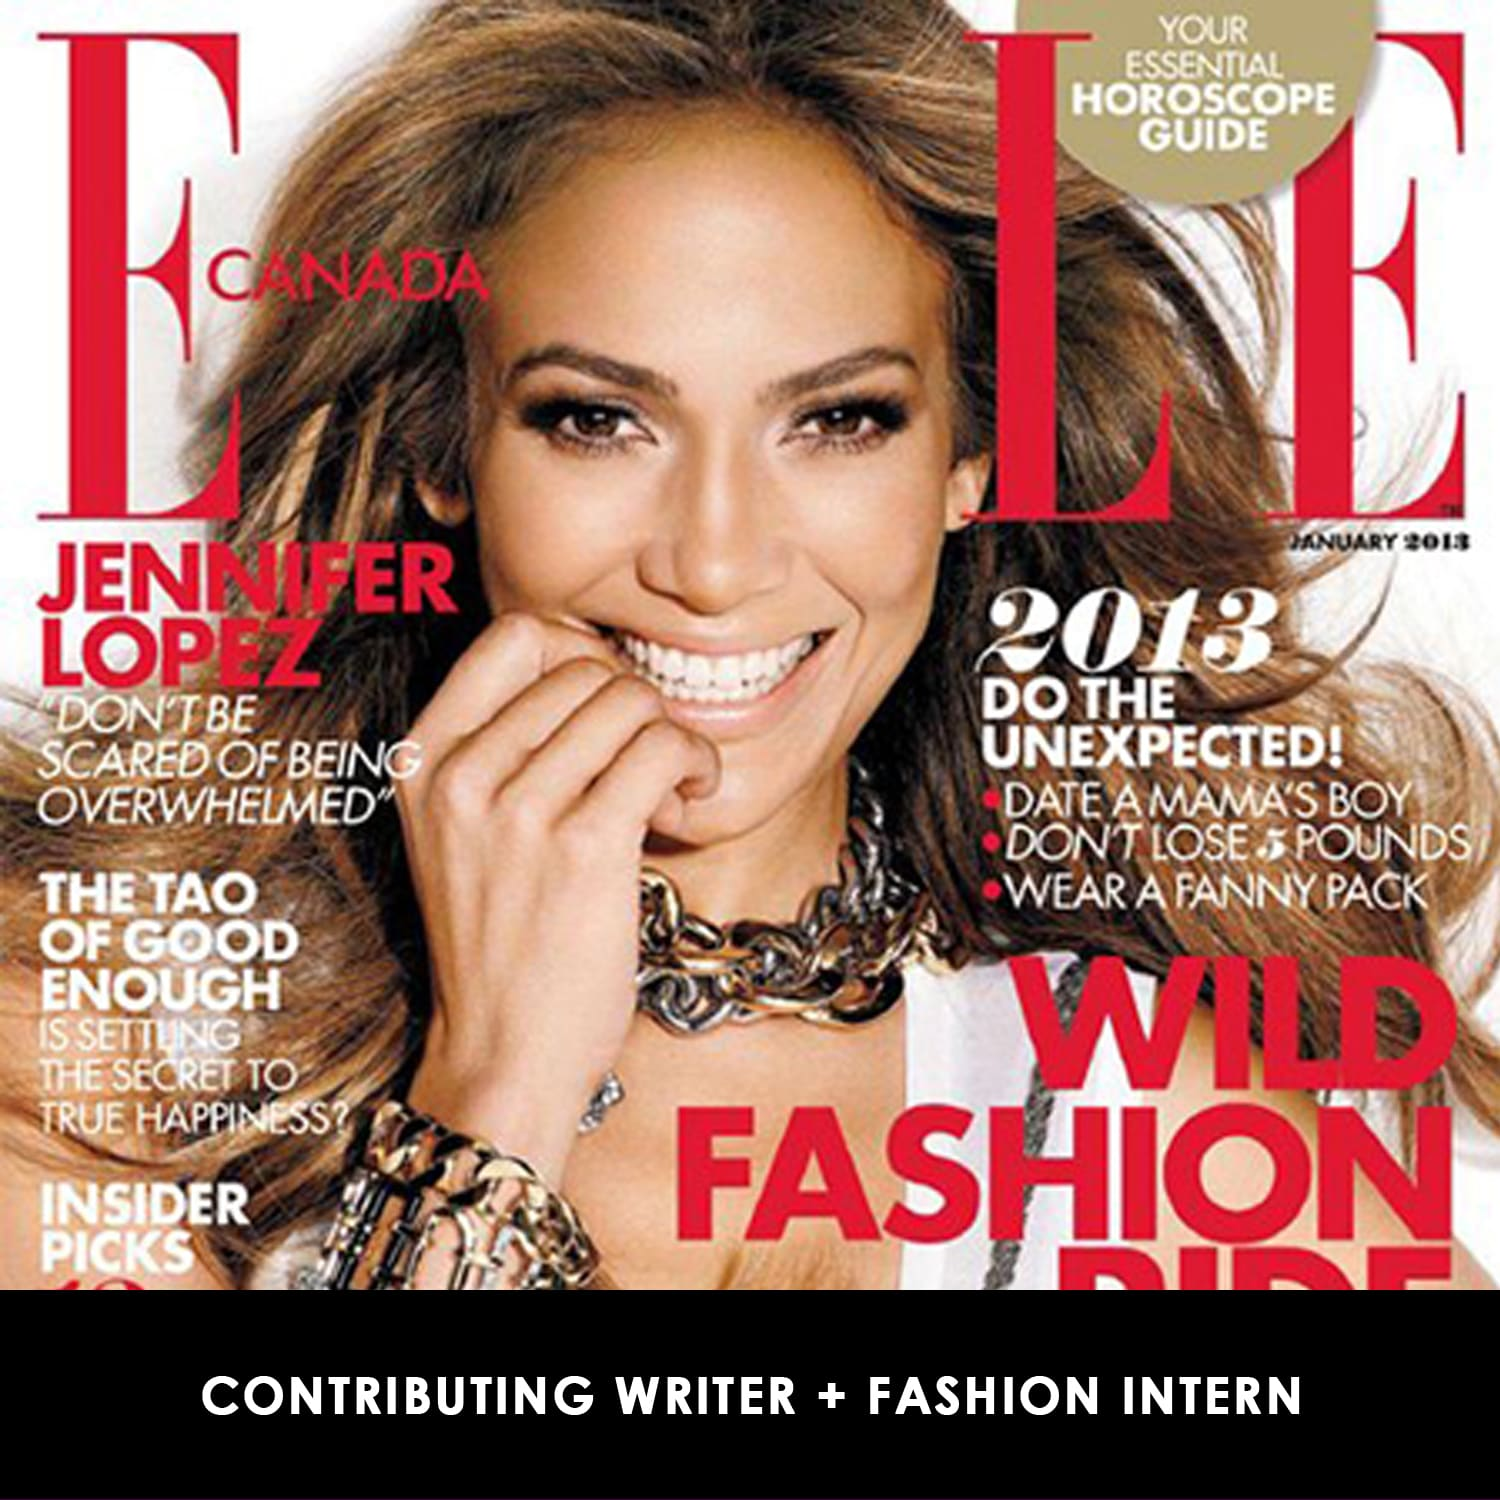 JLO-ELLE-MAGAZINE-KATE-MATTHEWS-FASHION-STYLIST